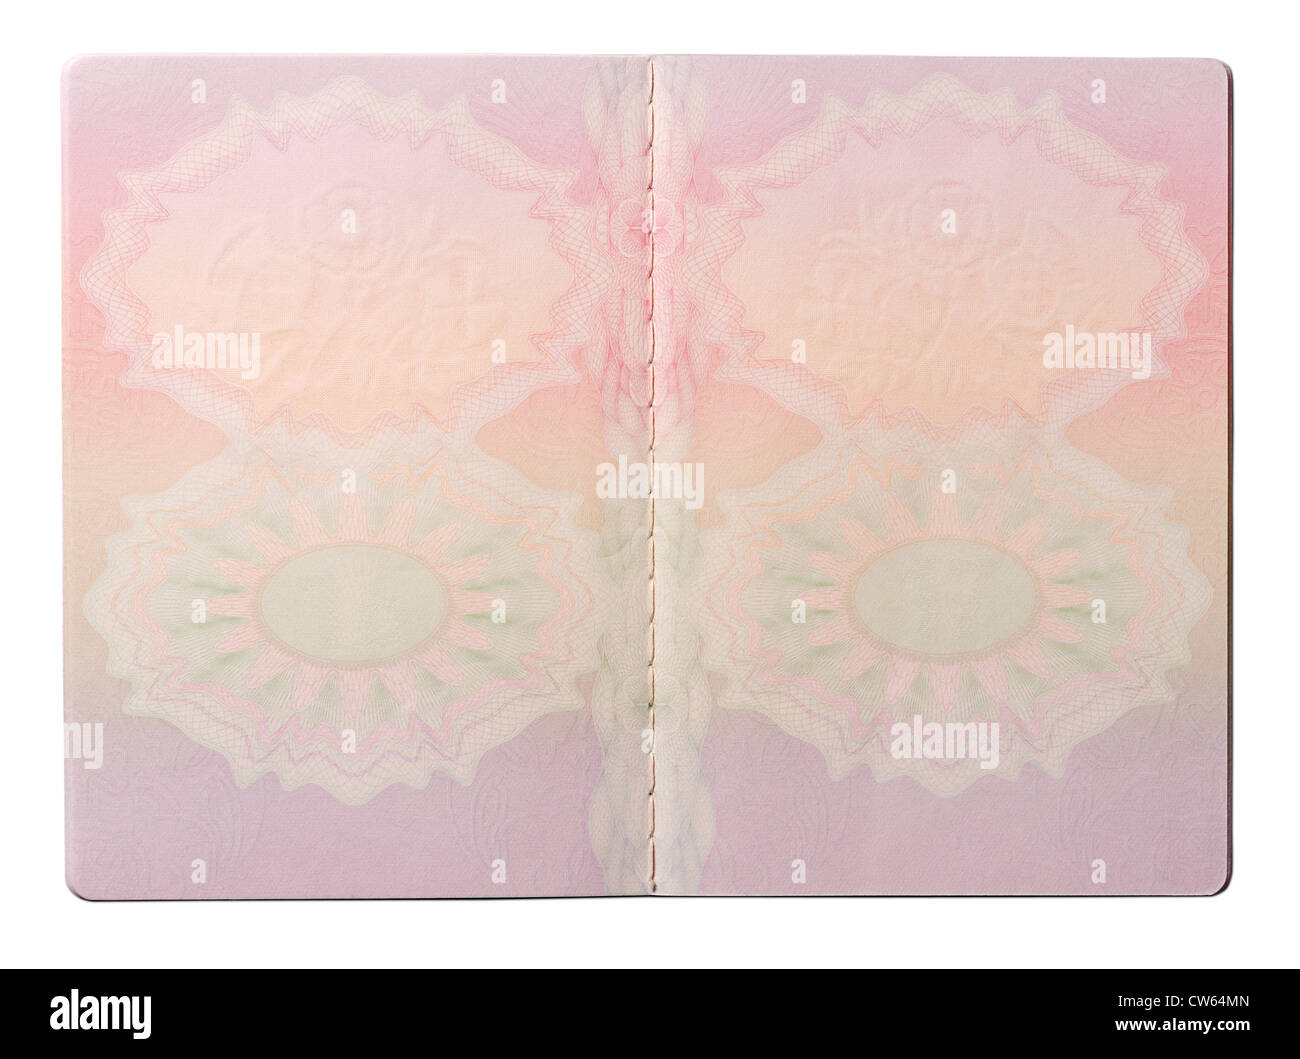 Blank UK passport pages - Stock Image